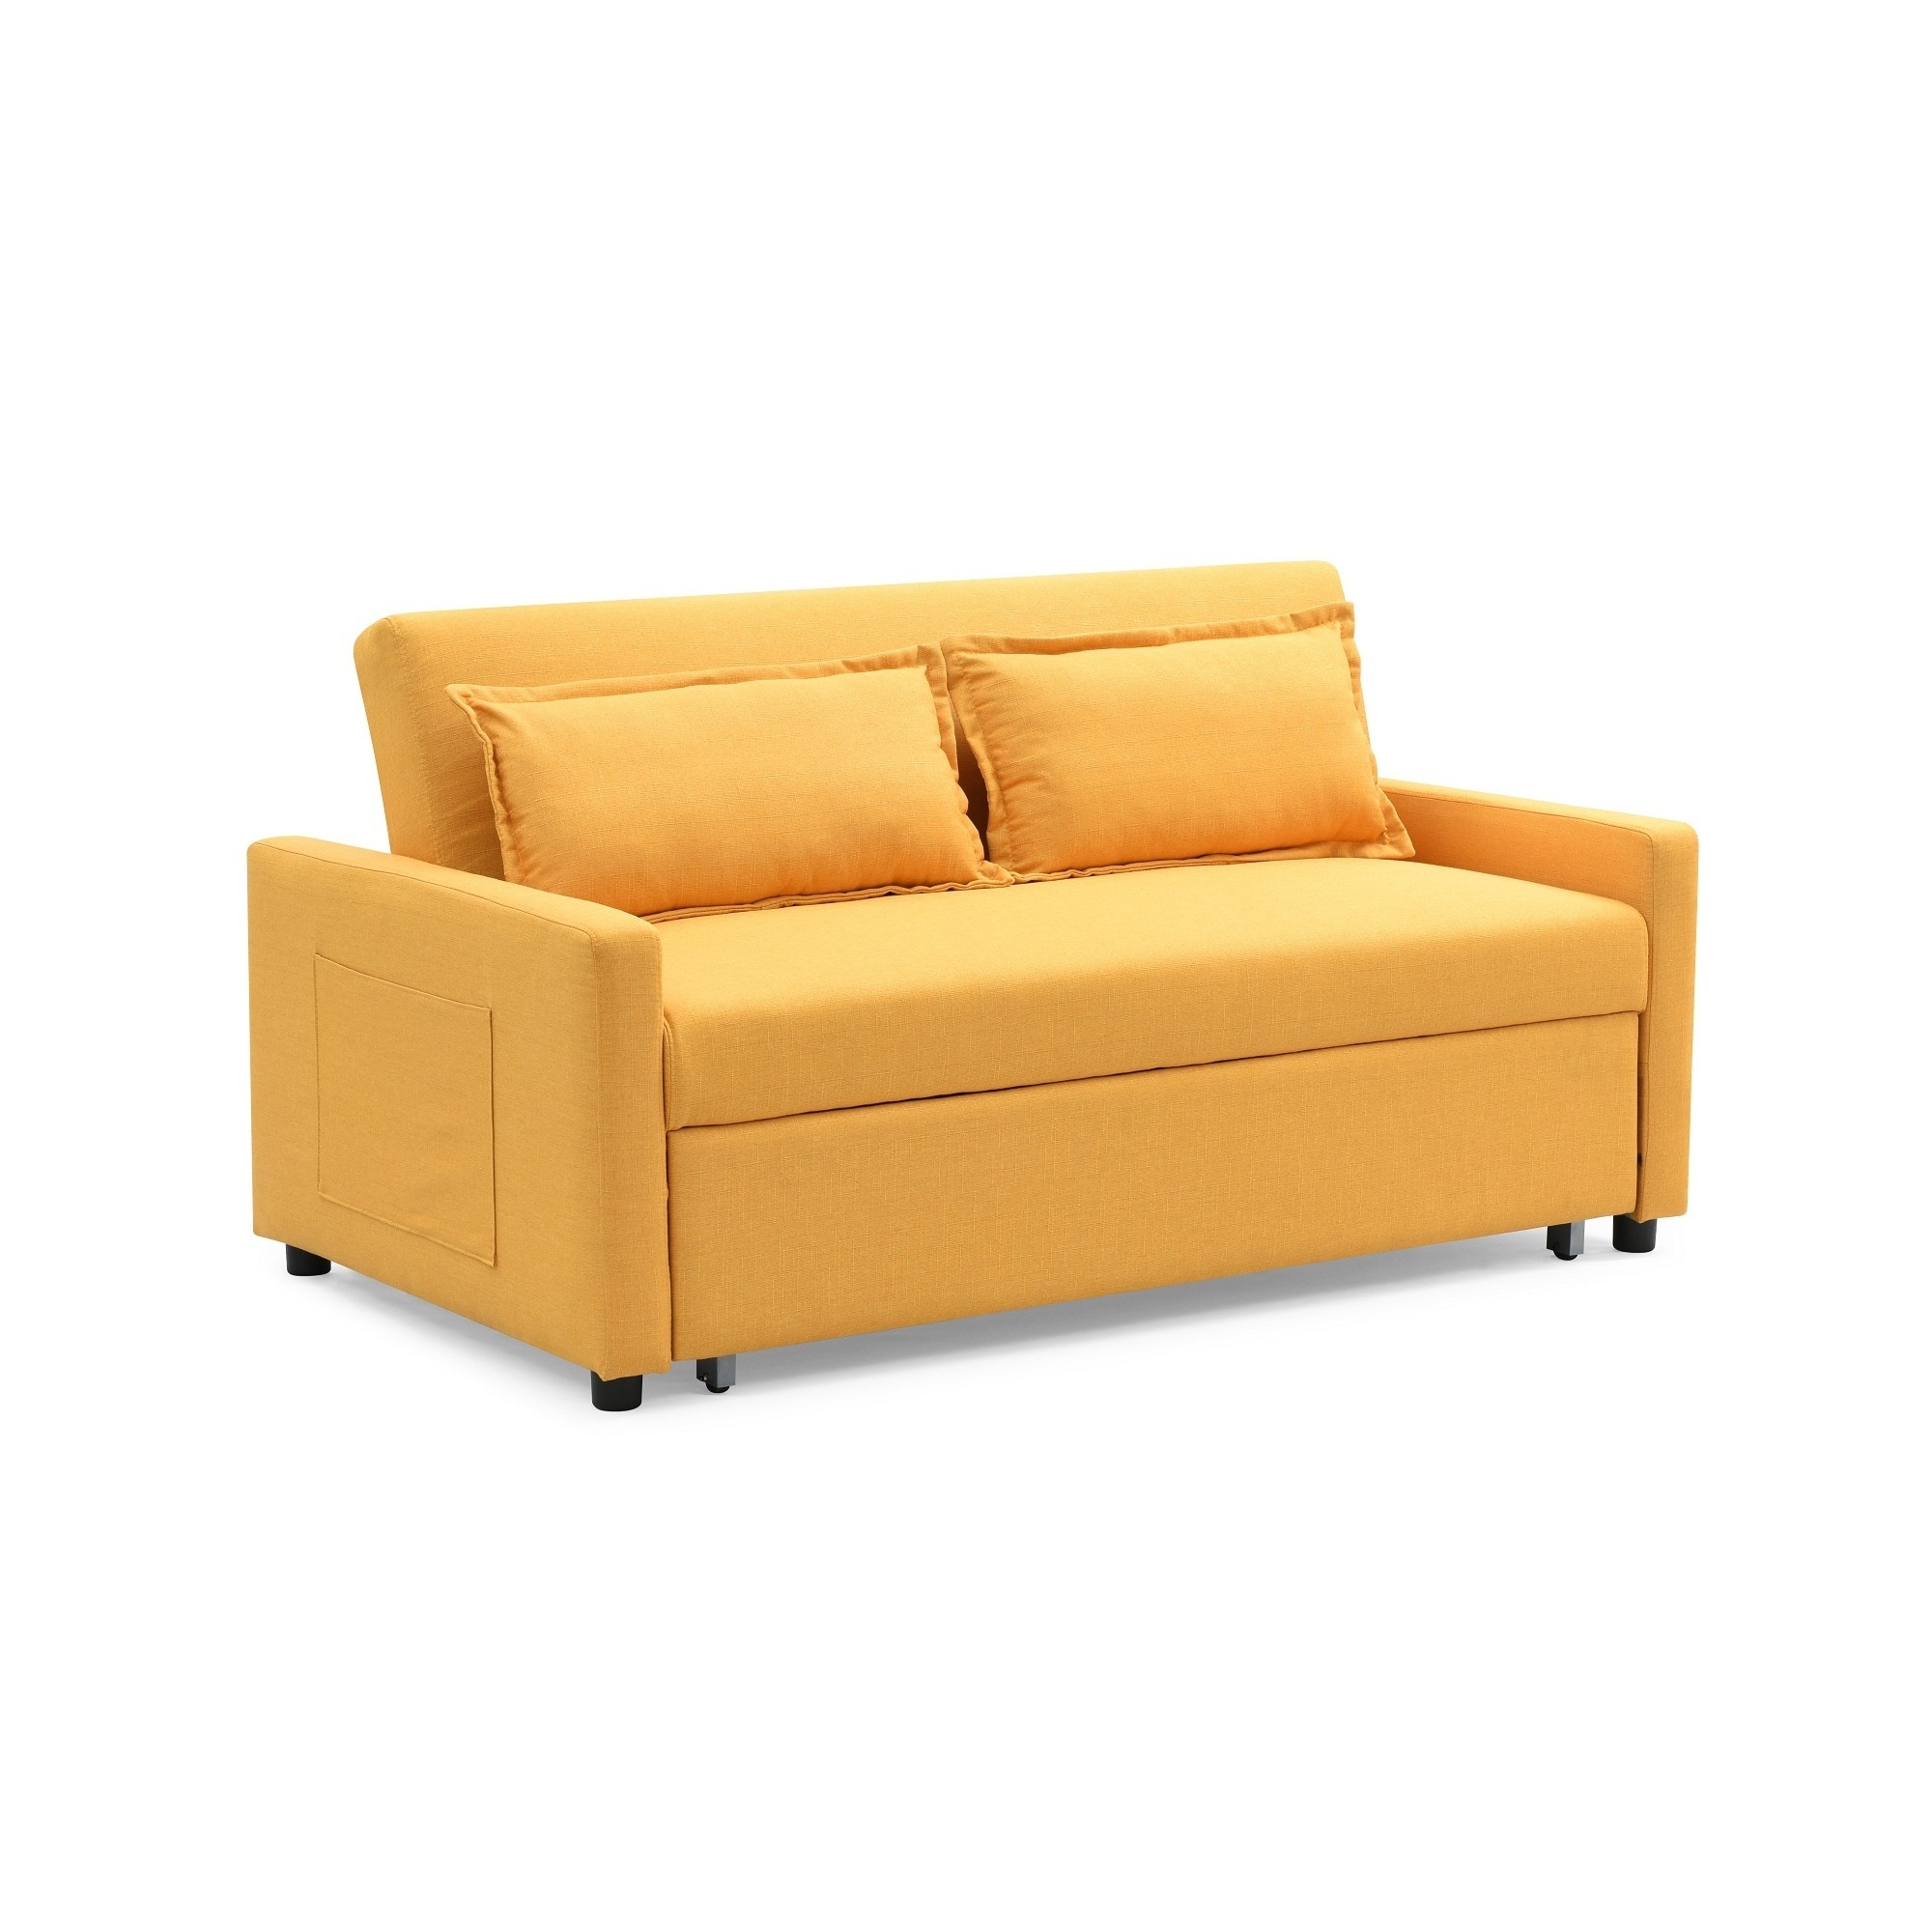 Ledersofa modern  Modern Convertible Sofa with Pullout Bed - Free Shipping Today ...